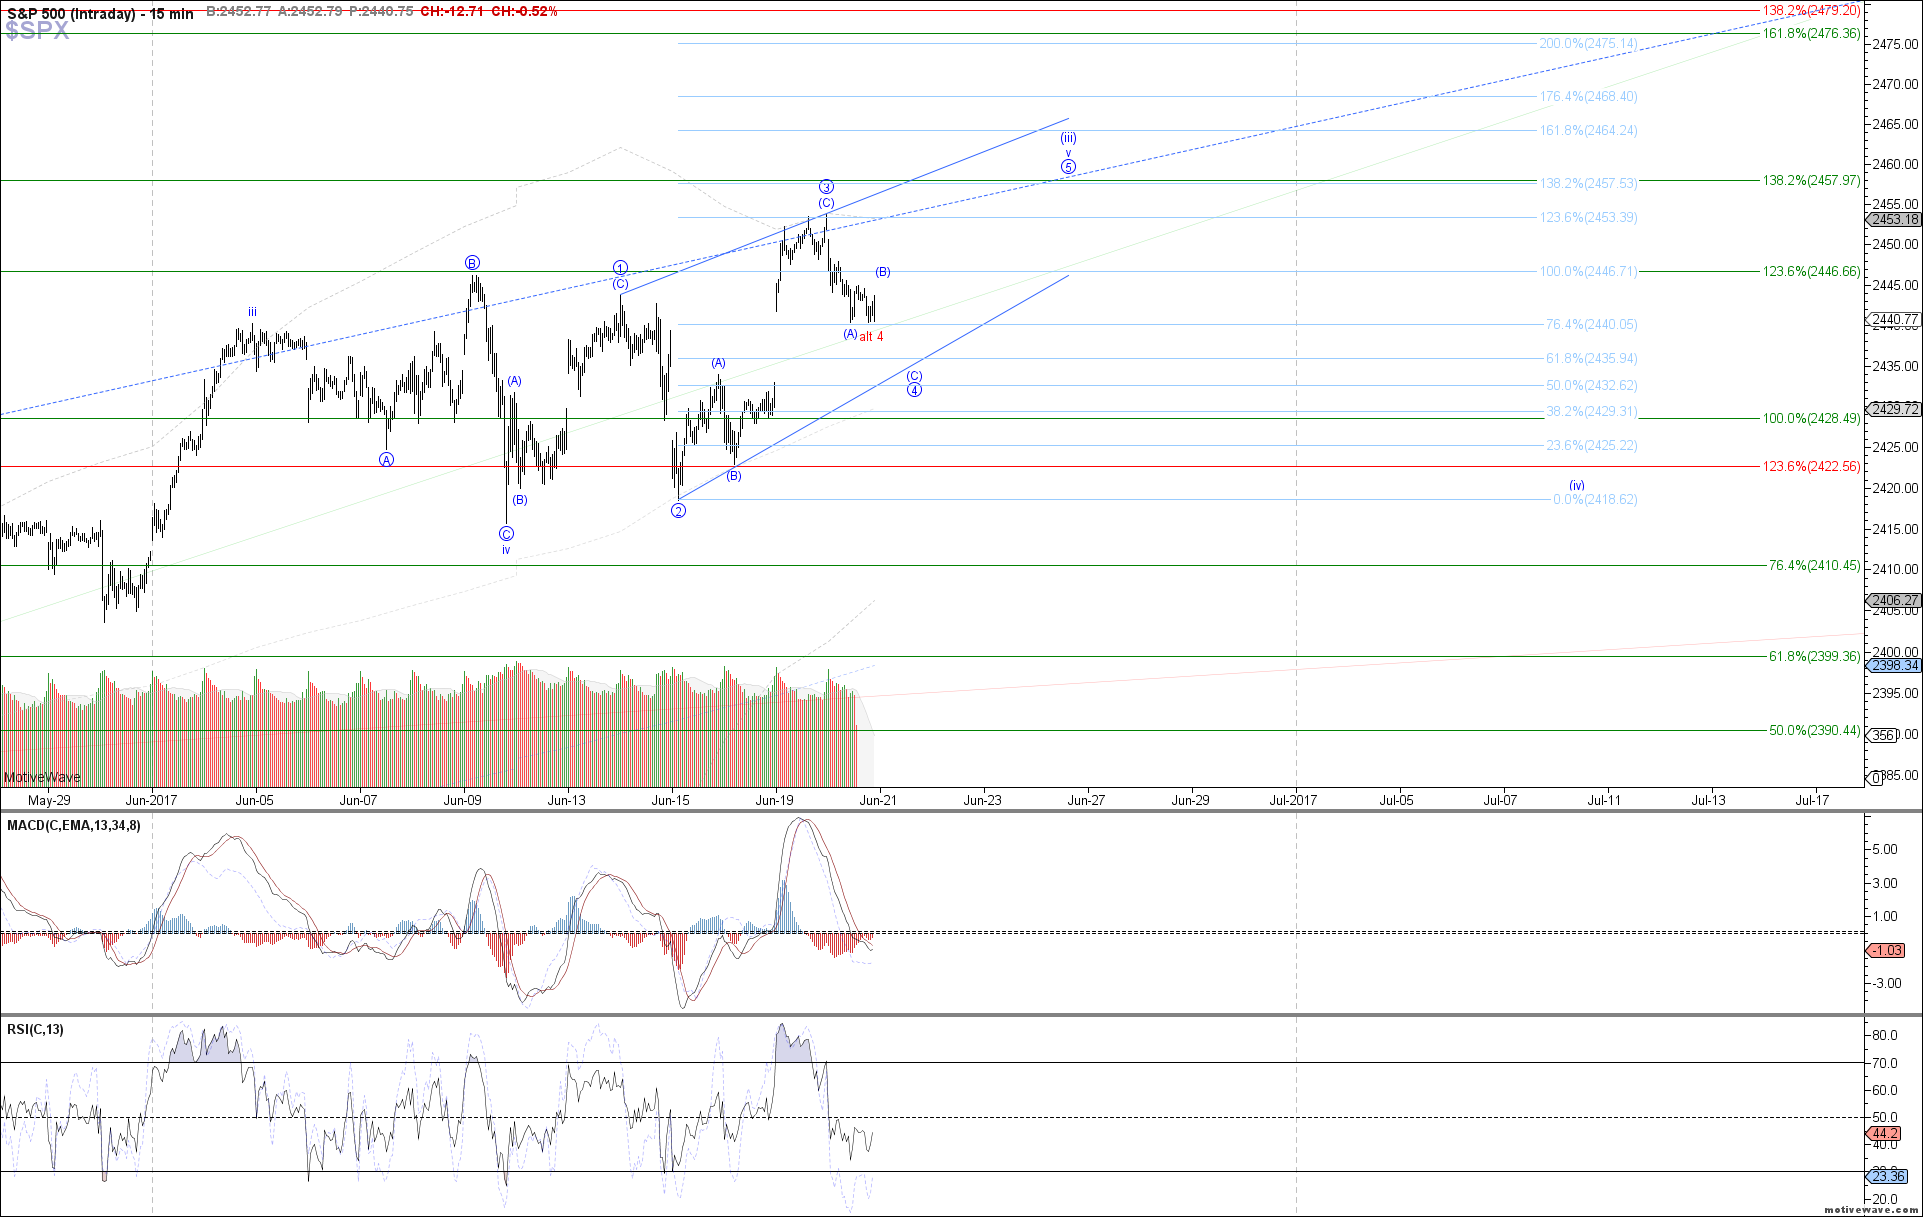 $SPX - Intraday - Jun-20 1226 PM (15 min)